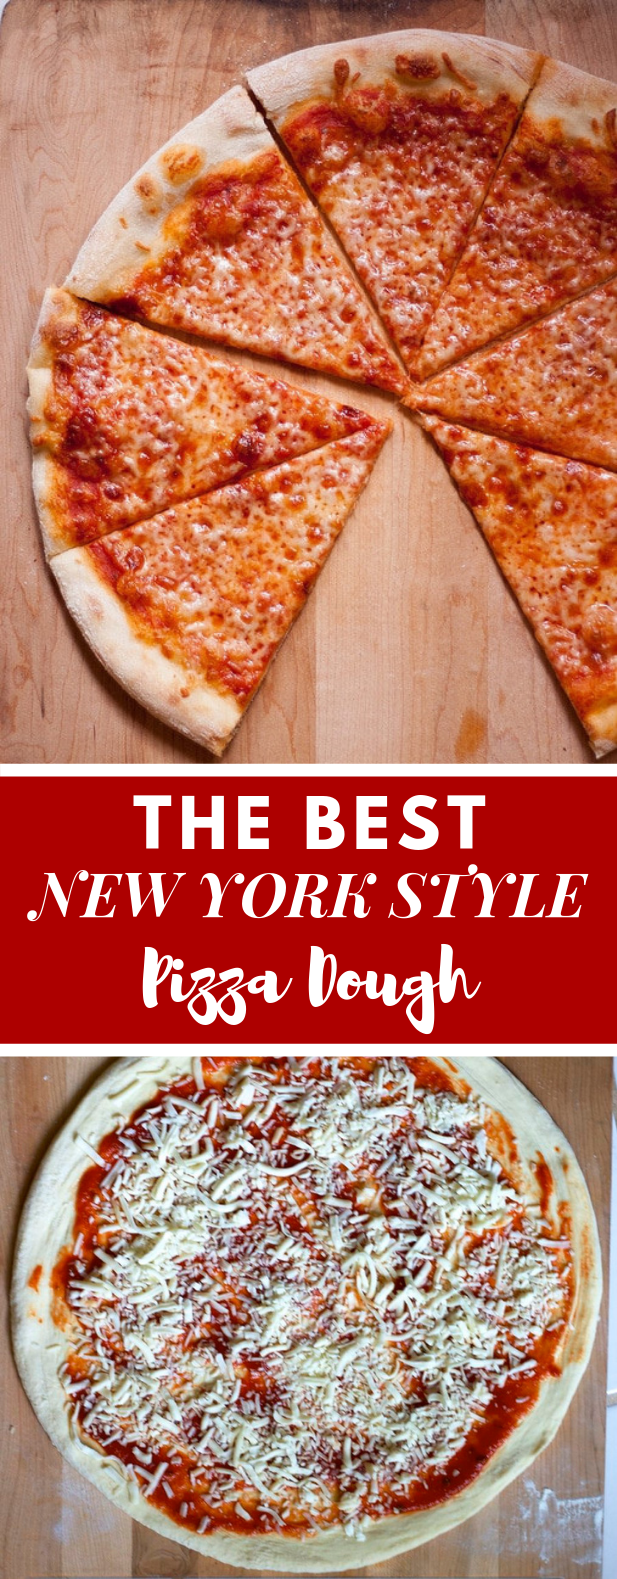 THE BEST NEW YORK STYLE PIZZA DOUGH #Meals #Recipes